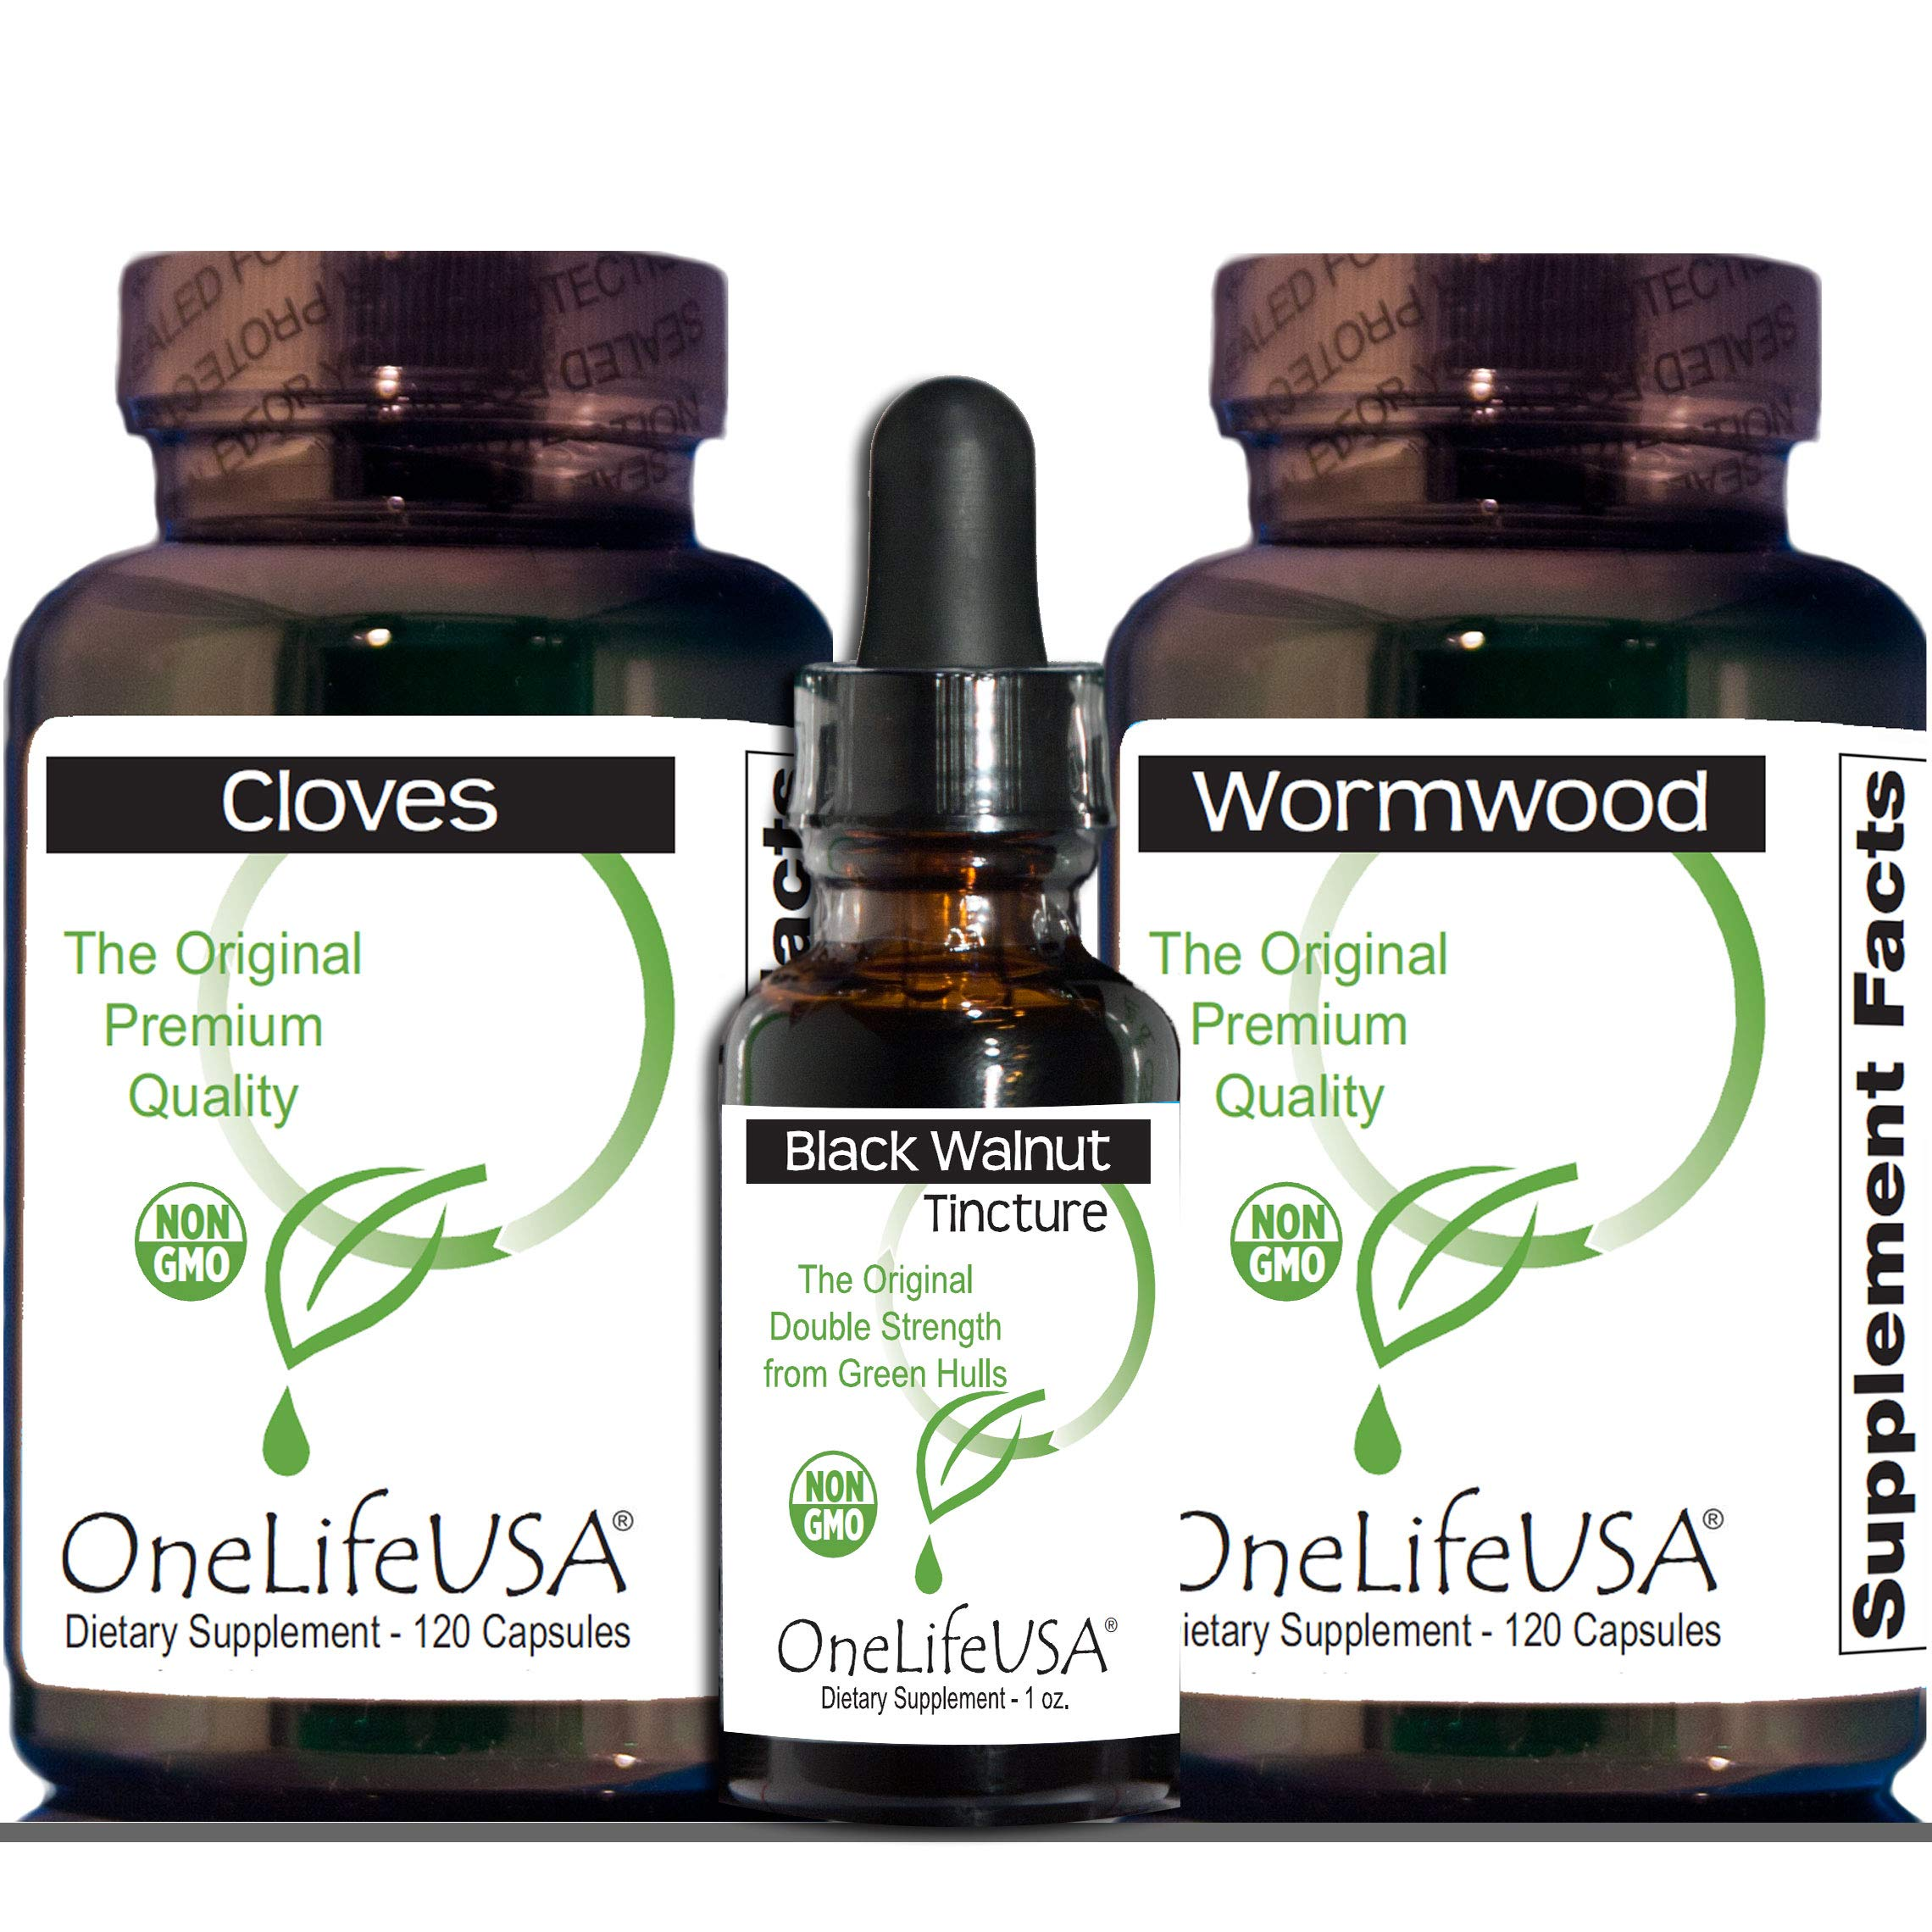 Original para Kit + 1 Maintenance Cycles - Products All Non-GMO and Established by Dr. Clark - This Cleanse Ships Free -100% Money Back Guarantee by OneLifeUSA